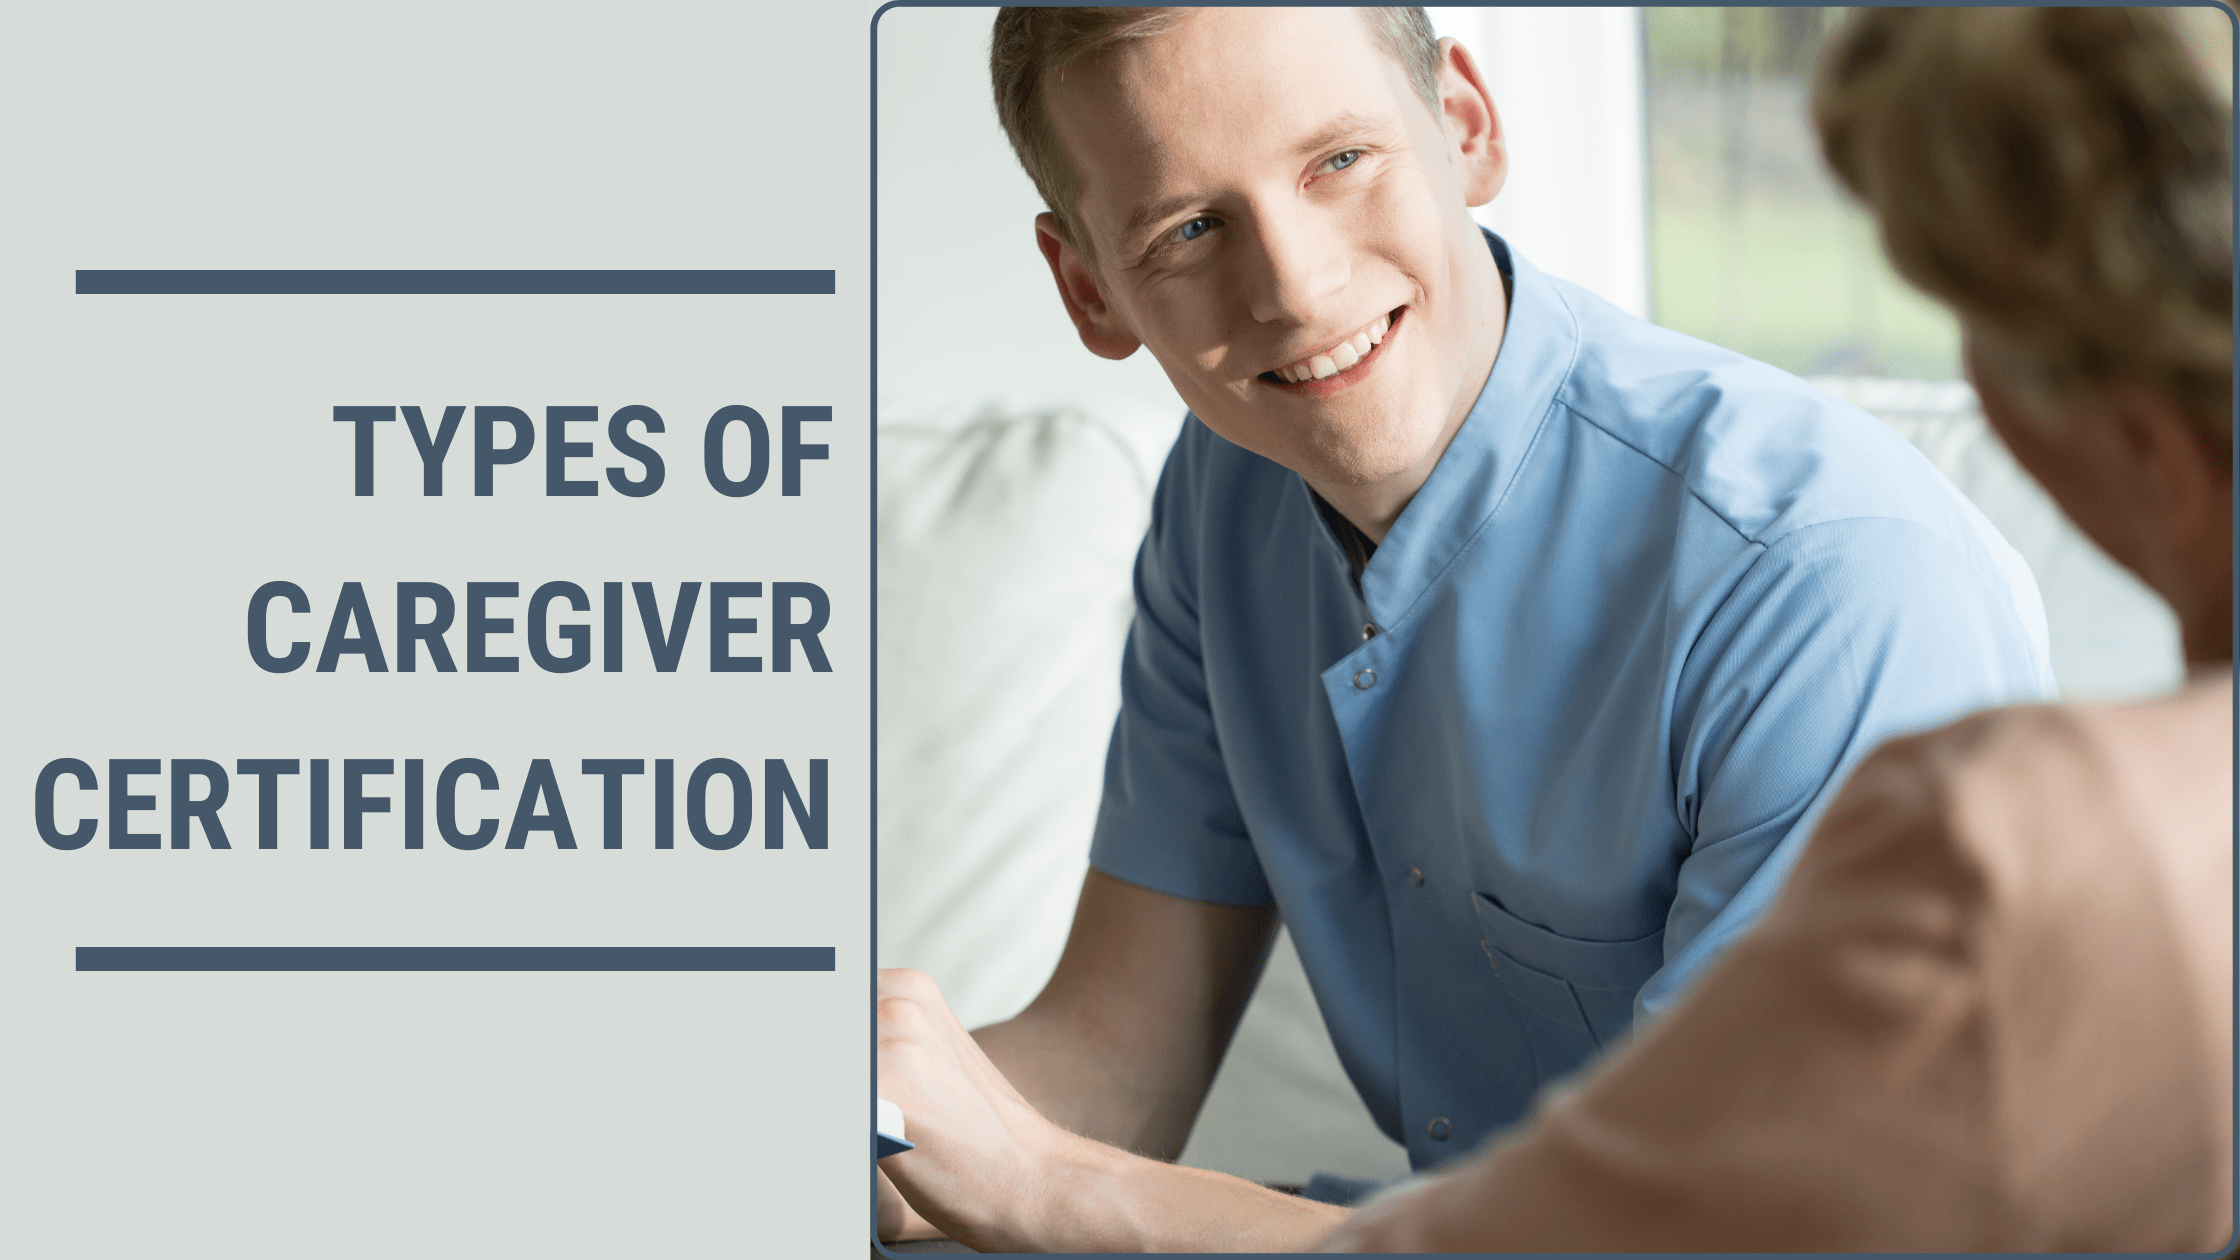 Types Of Caregiver Certification